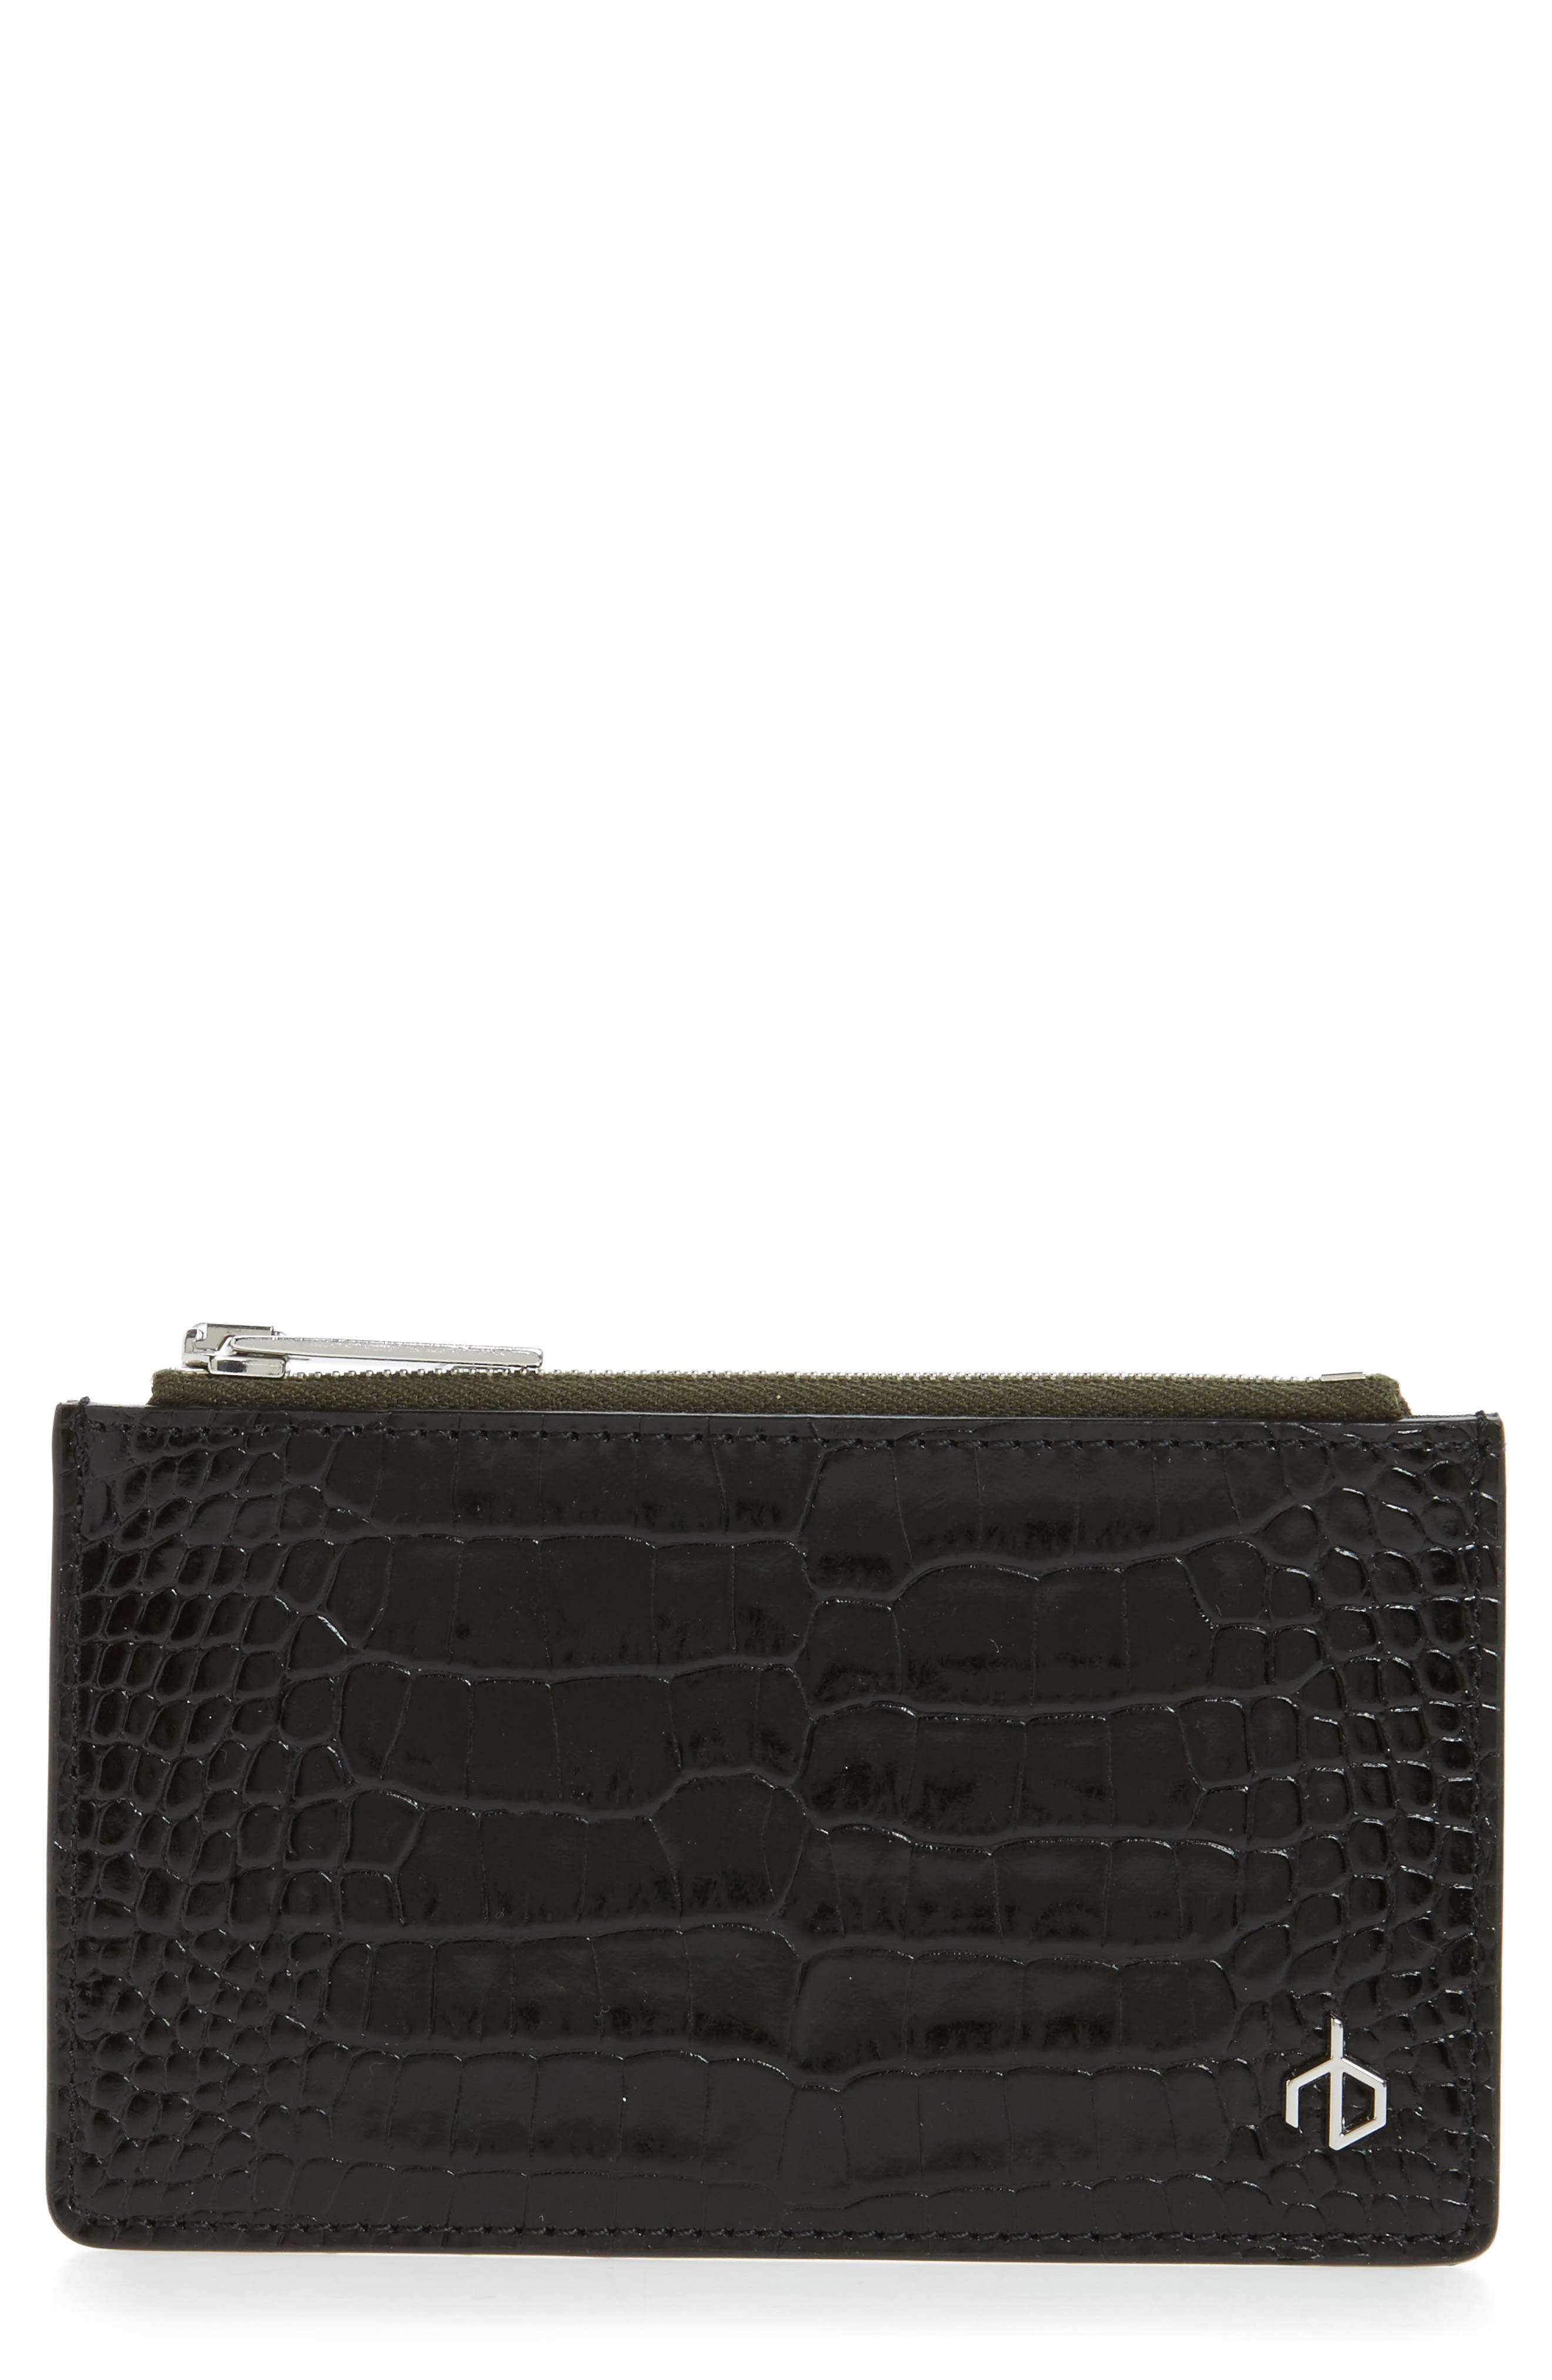 Croc Embossed Leather Zip Card Case,                             Main thumbnail 1, color,                             Black Croco